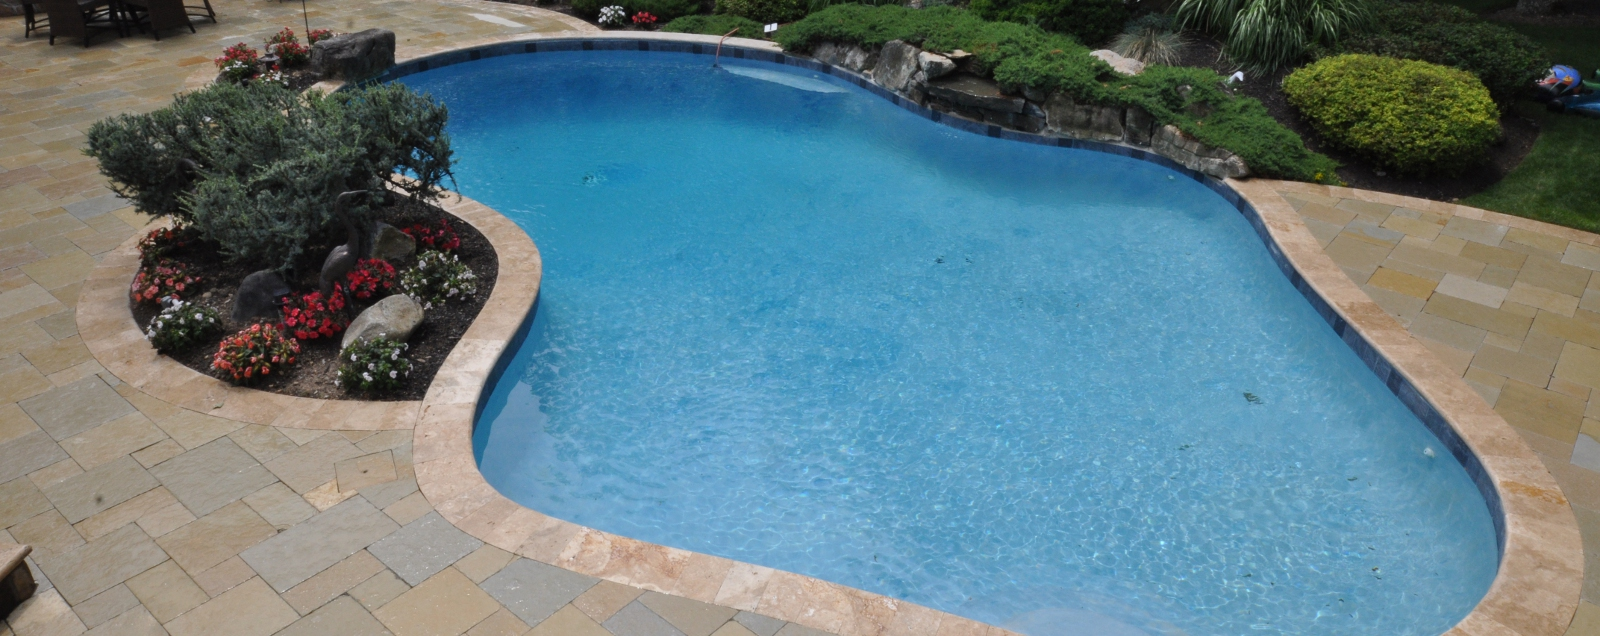 gunite-pools